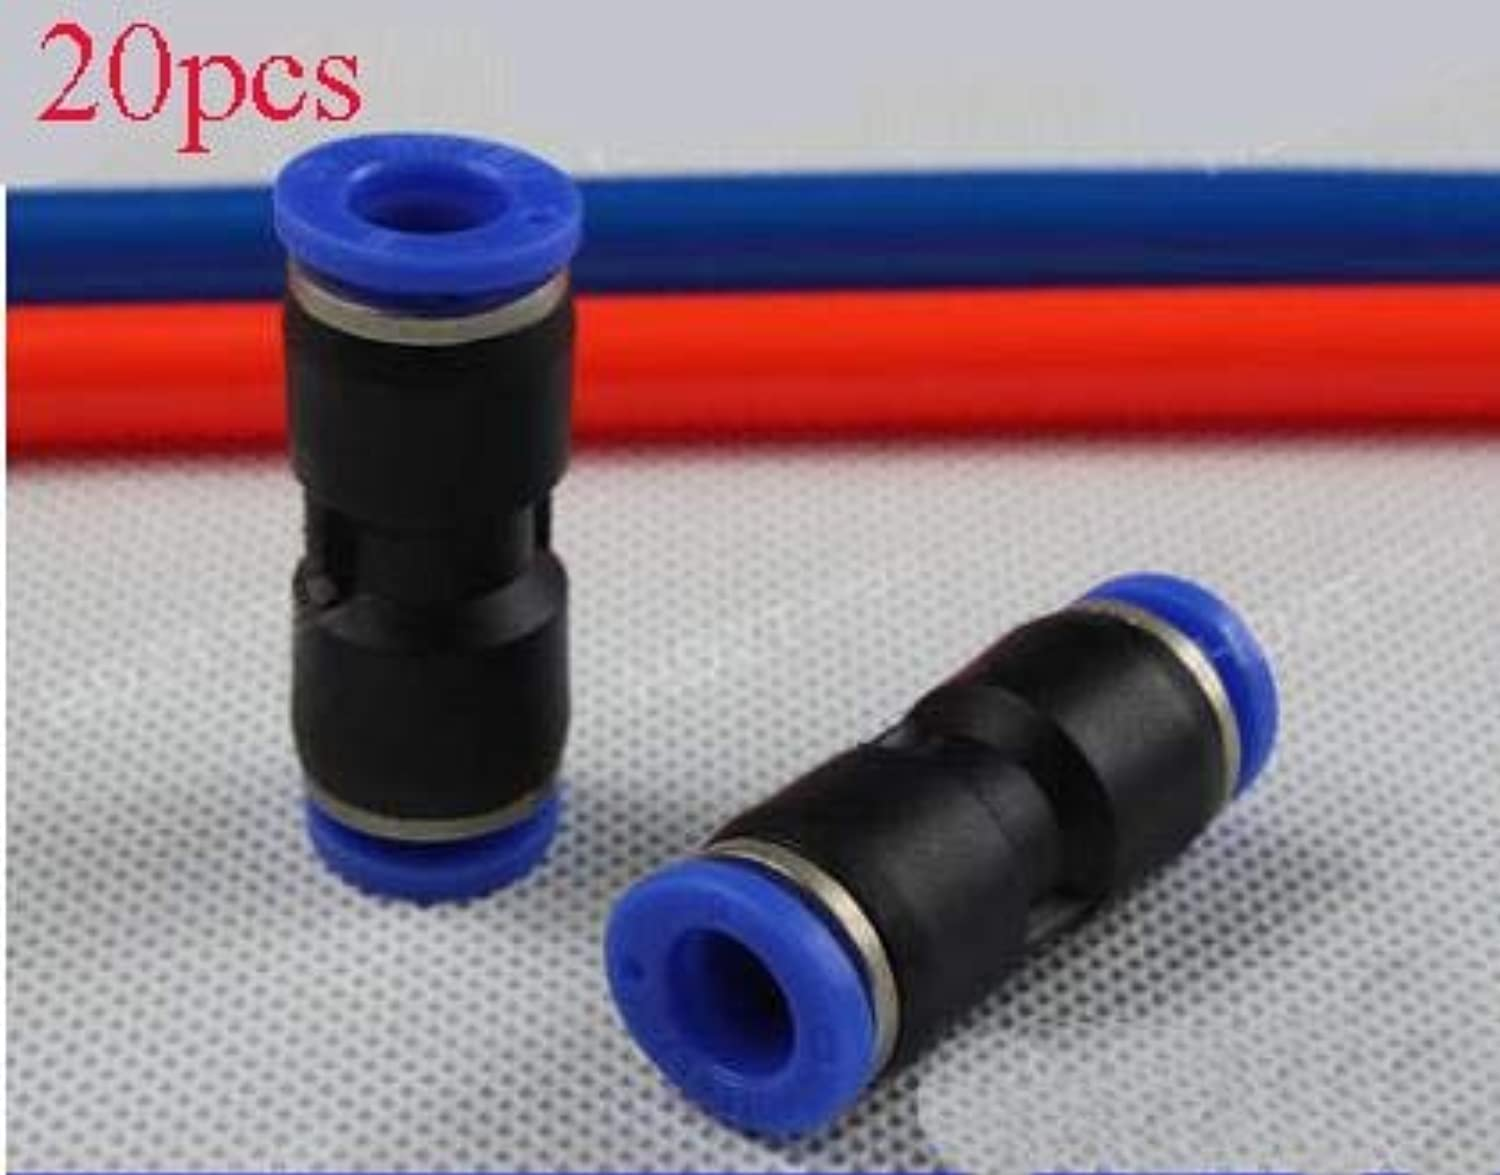 Laliva 20PCS Plastic Pneumatic Air Pipe Connector QuickInsert Straight Joint PU04 06 08 10 12 14 16 for RC Model UAV Drone  (color  PU10)